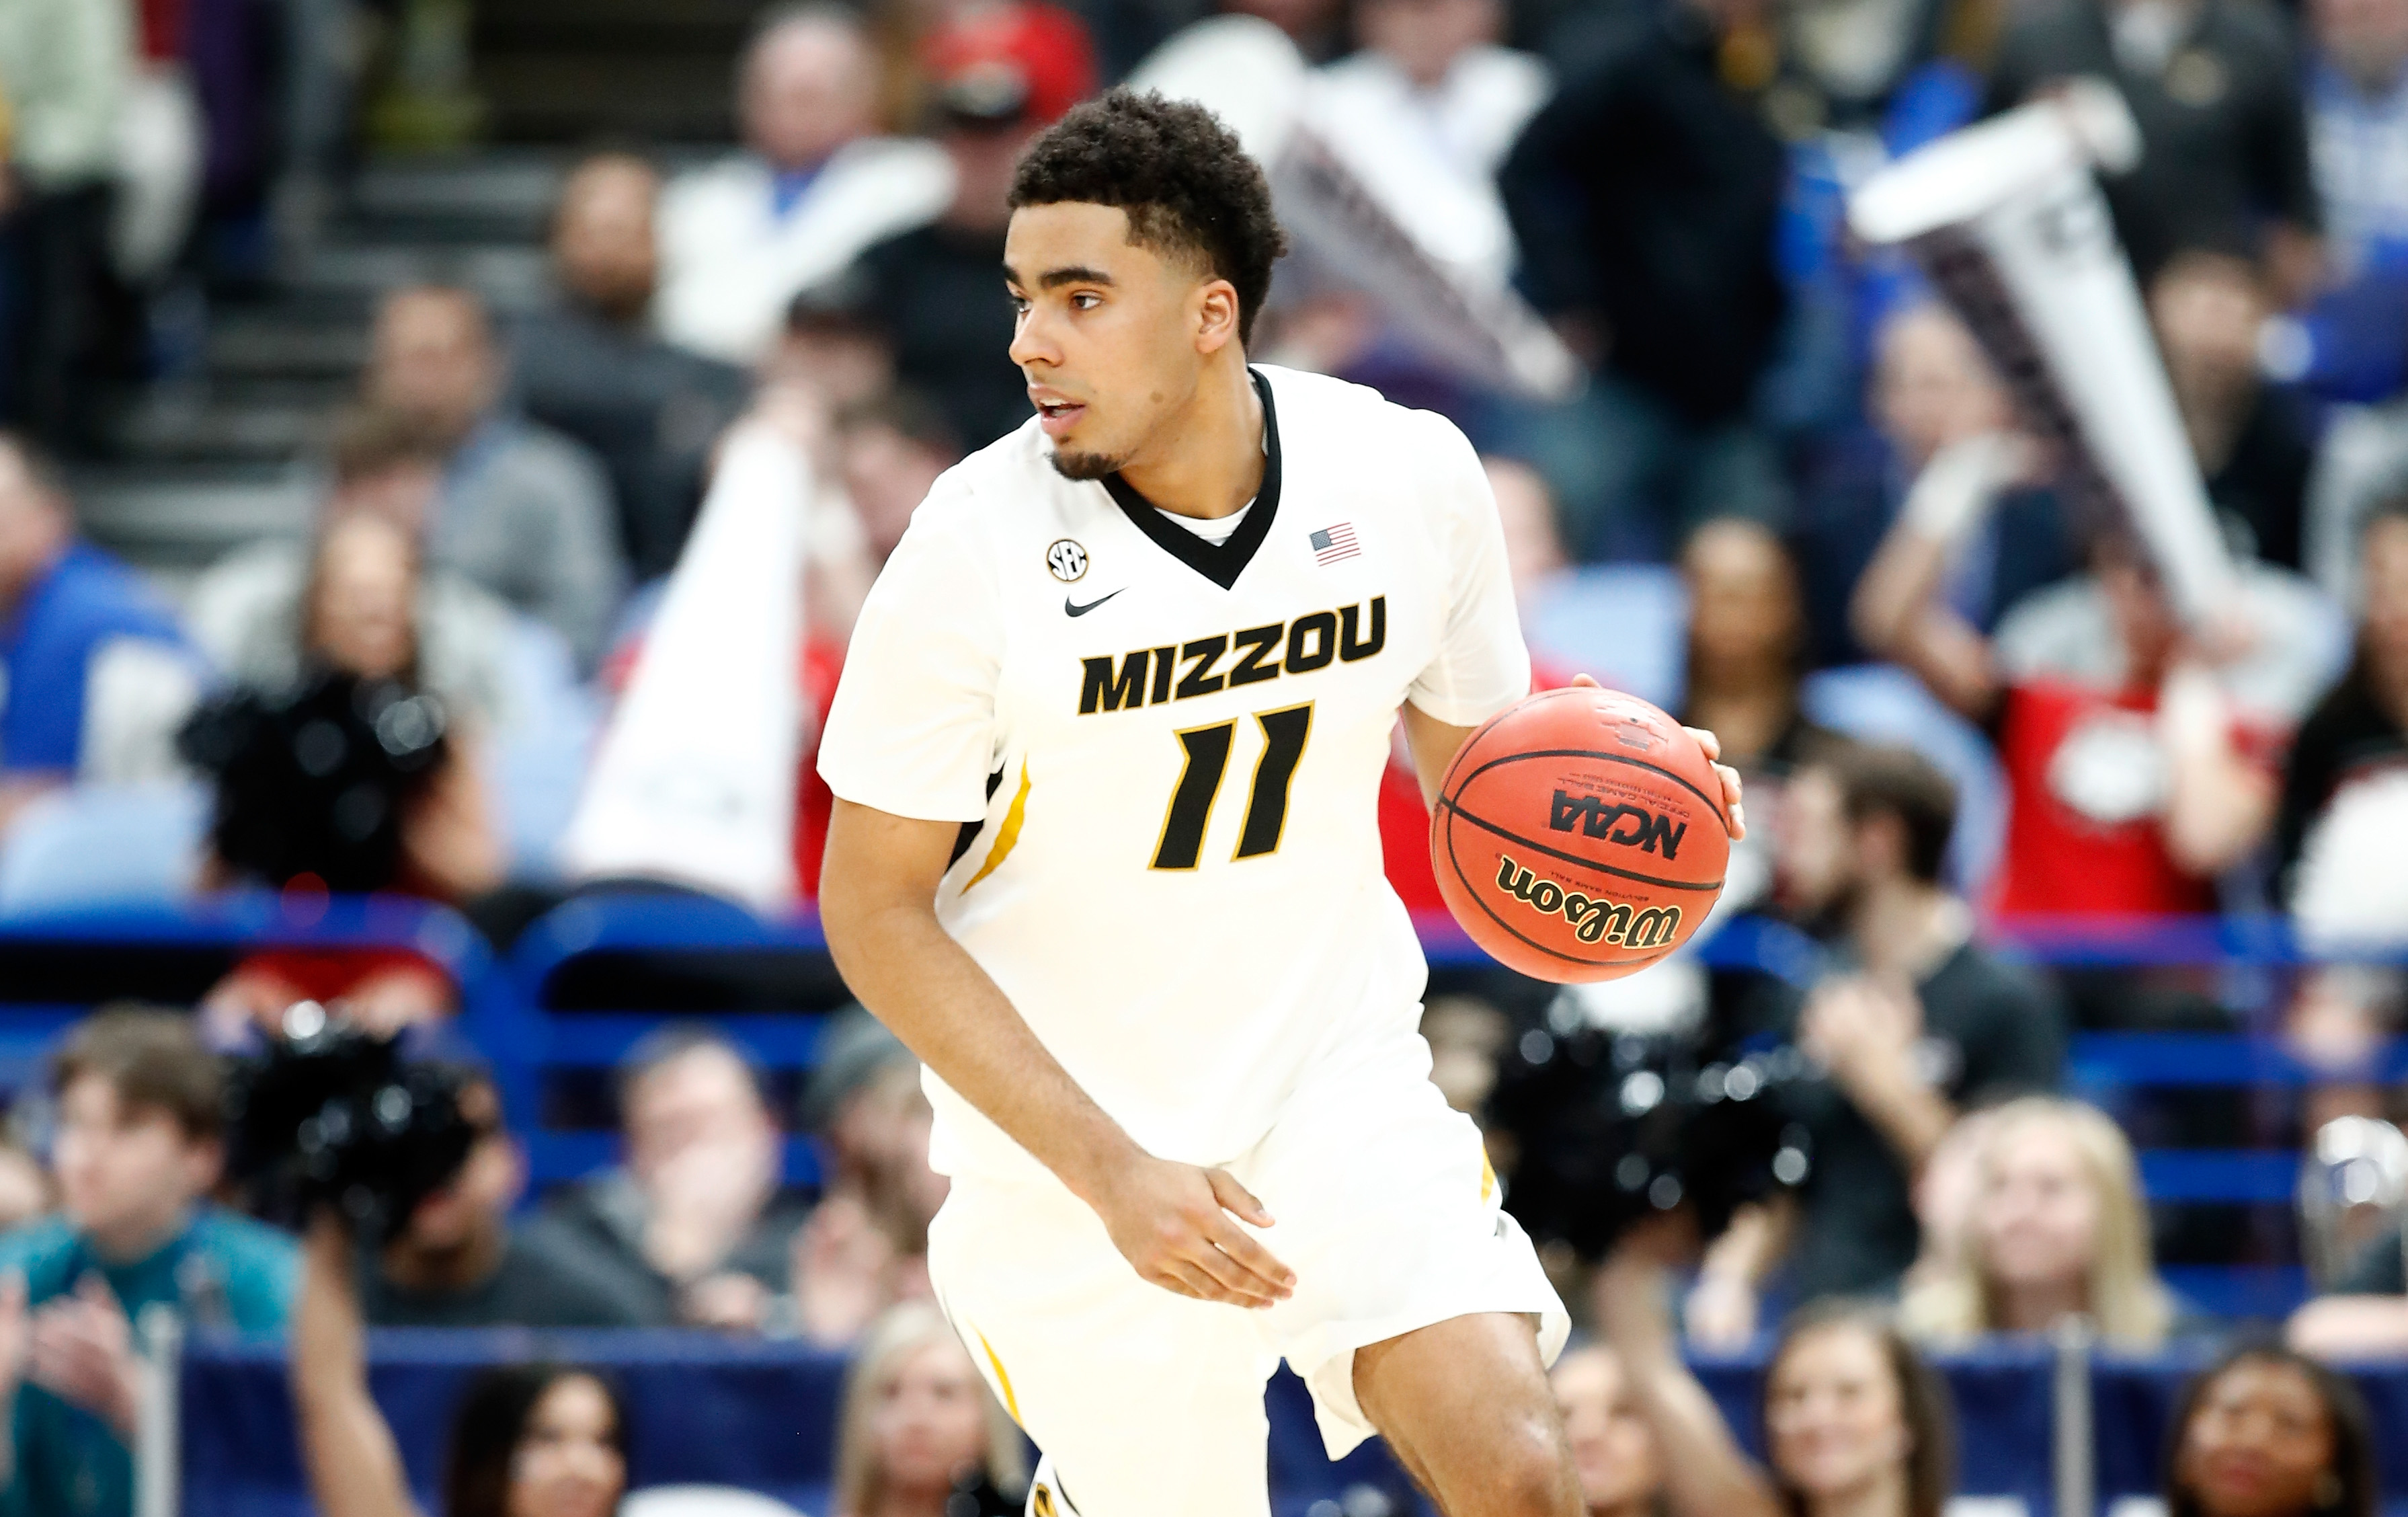 Missouri standout Jontay Porter's 2nd ACL tear is impossibly sad